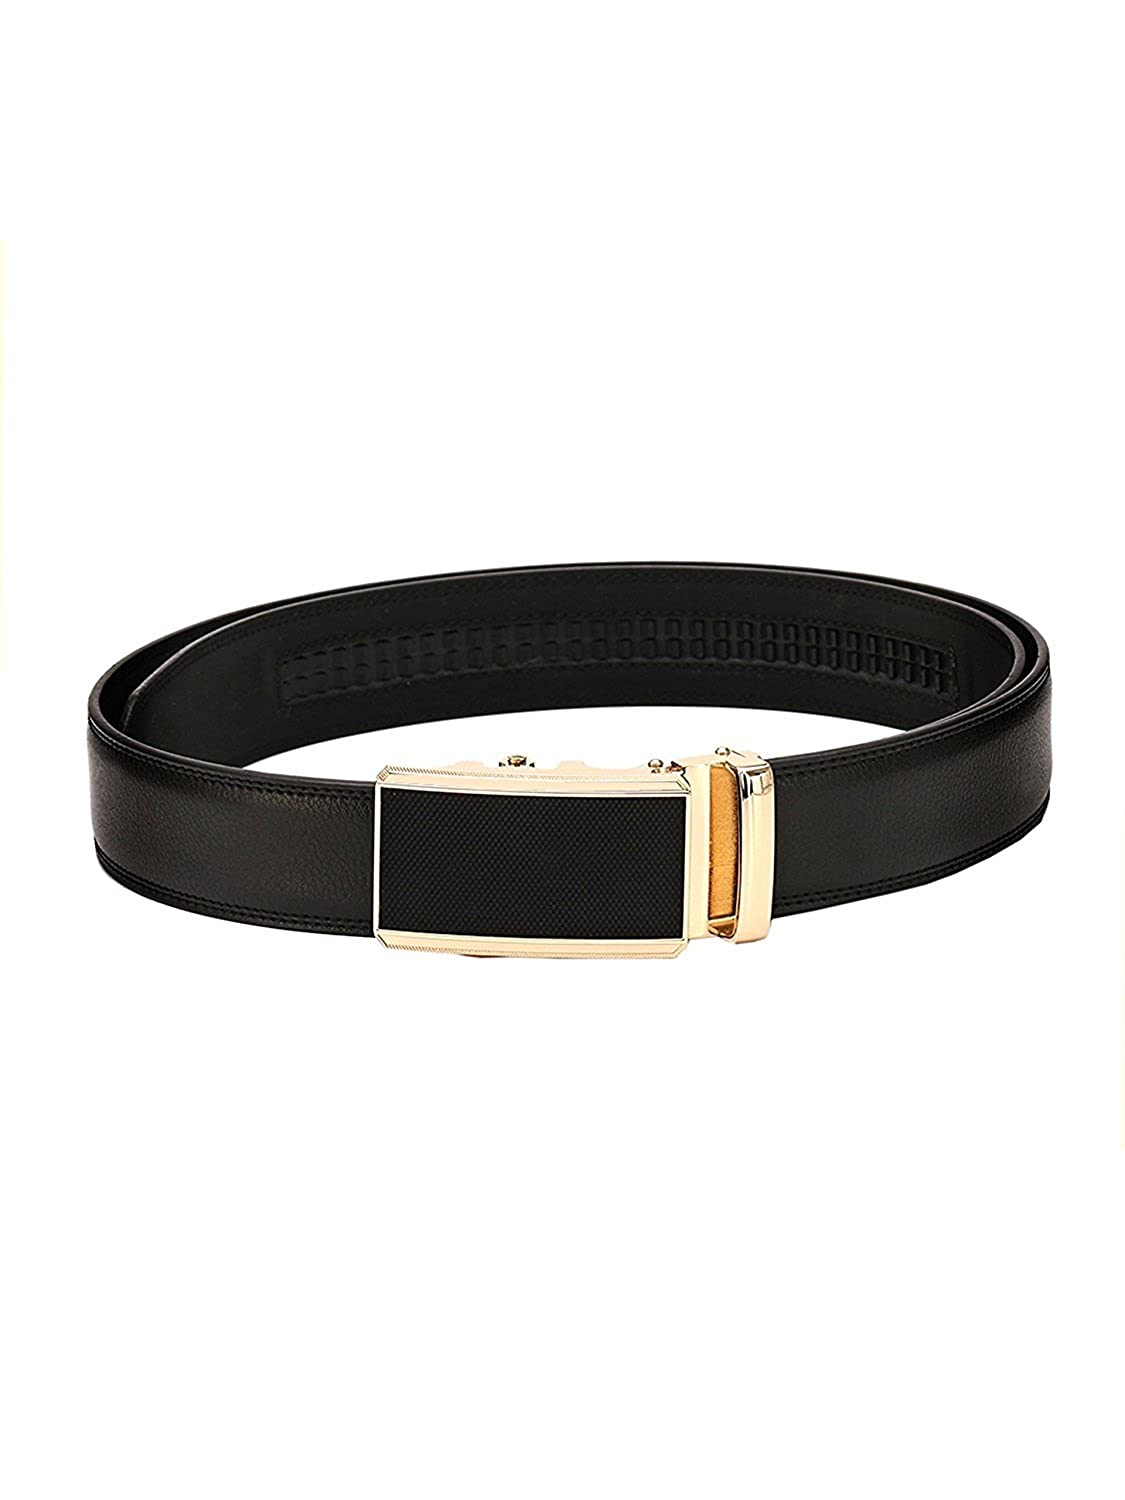 Pacific Gold Automatic Autolock Buckle Genuine Leather Formal Casual Belts For Men Boys